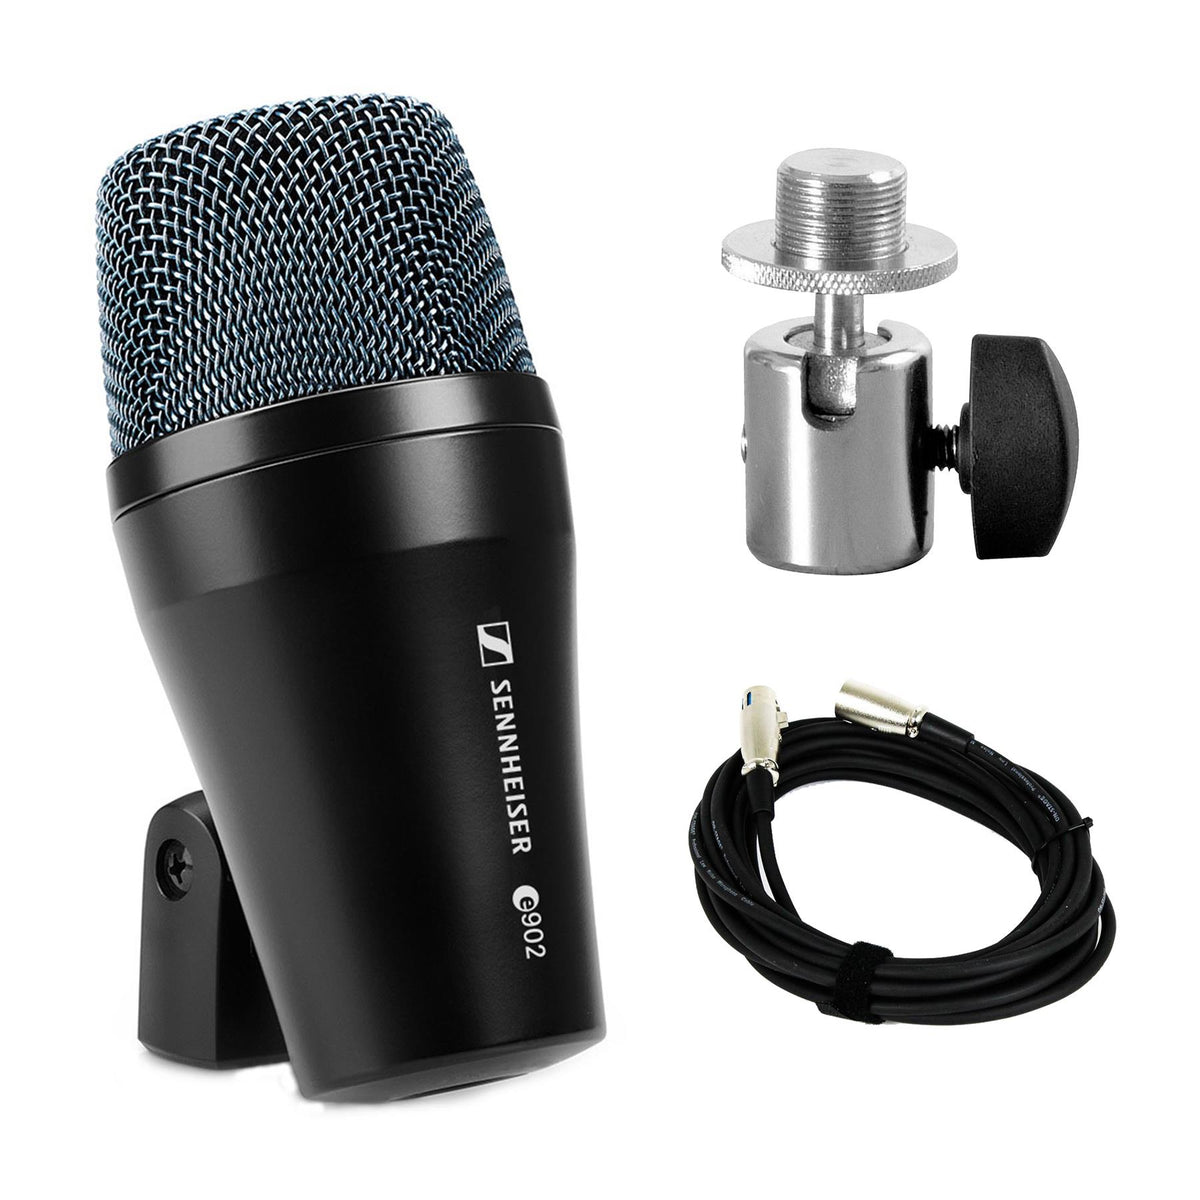 Sennheiser e902 Microphone Bundle with On-Stage MM01 Ball Joint Adapter & XLR Cable